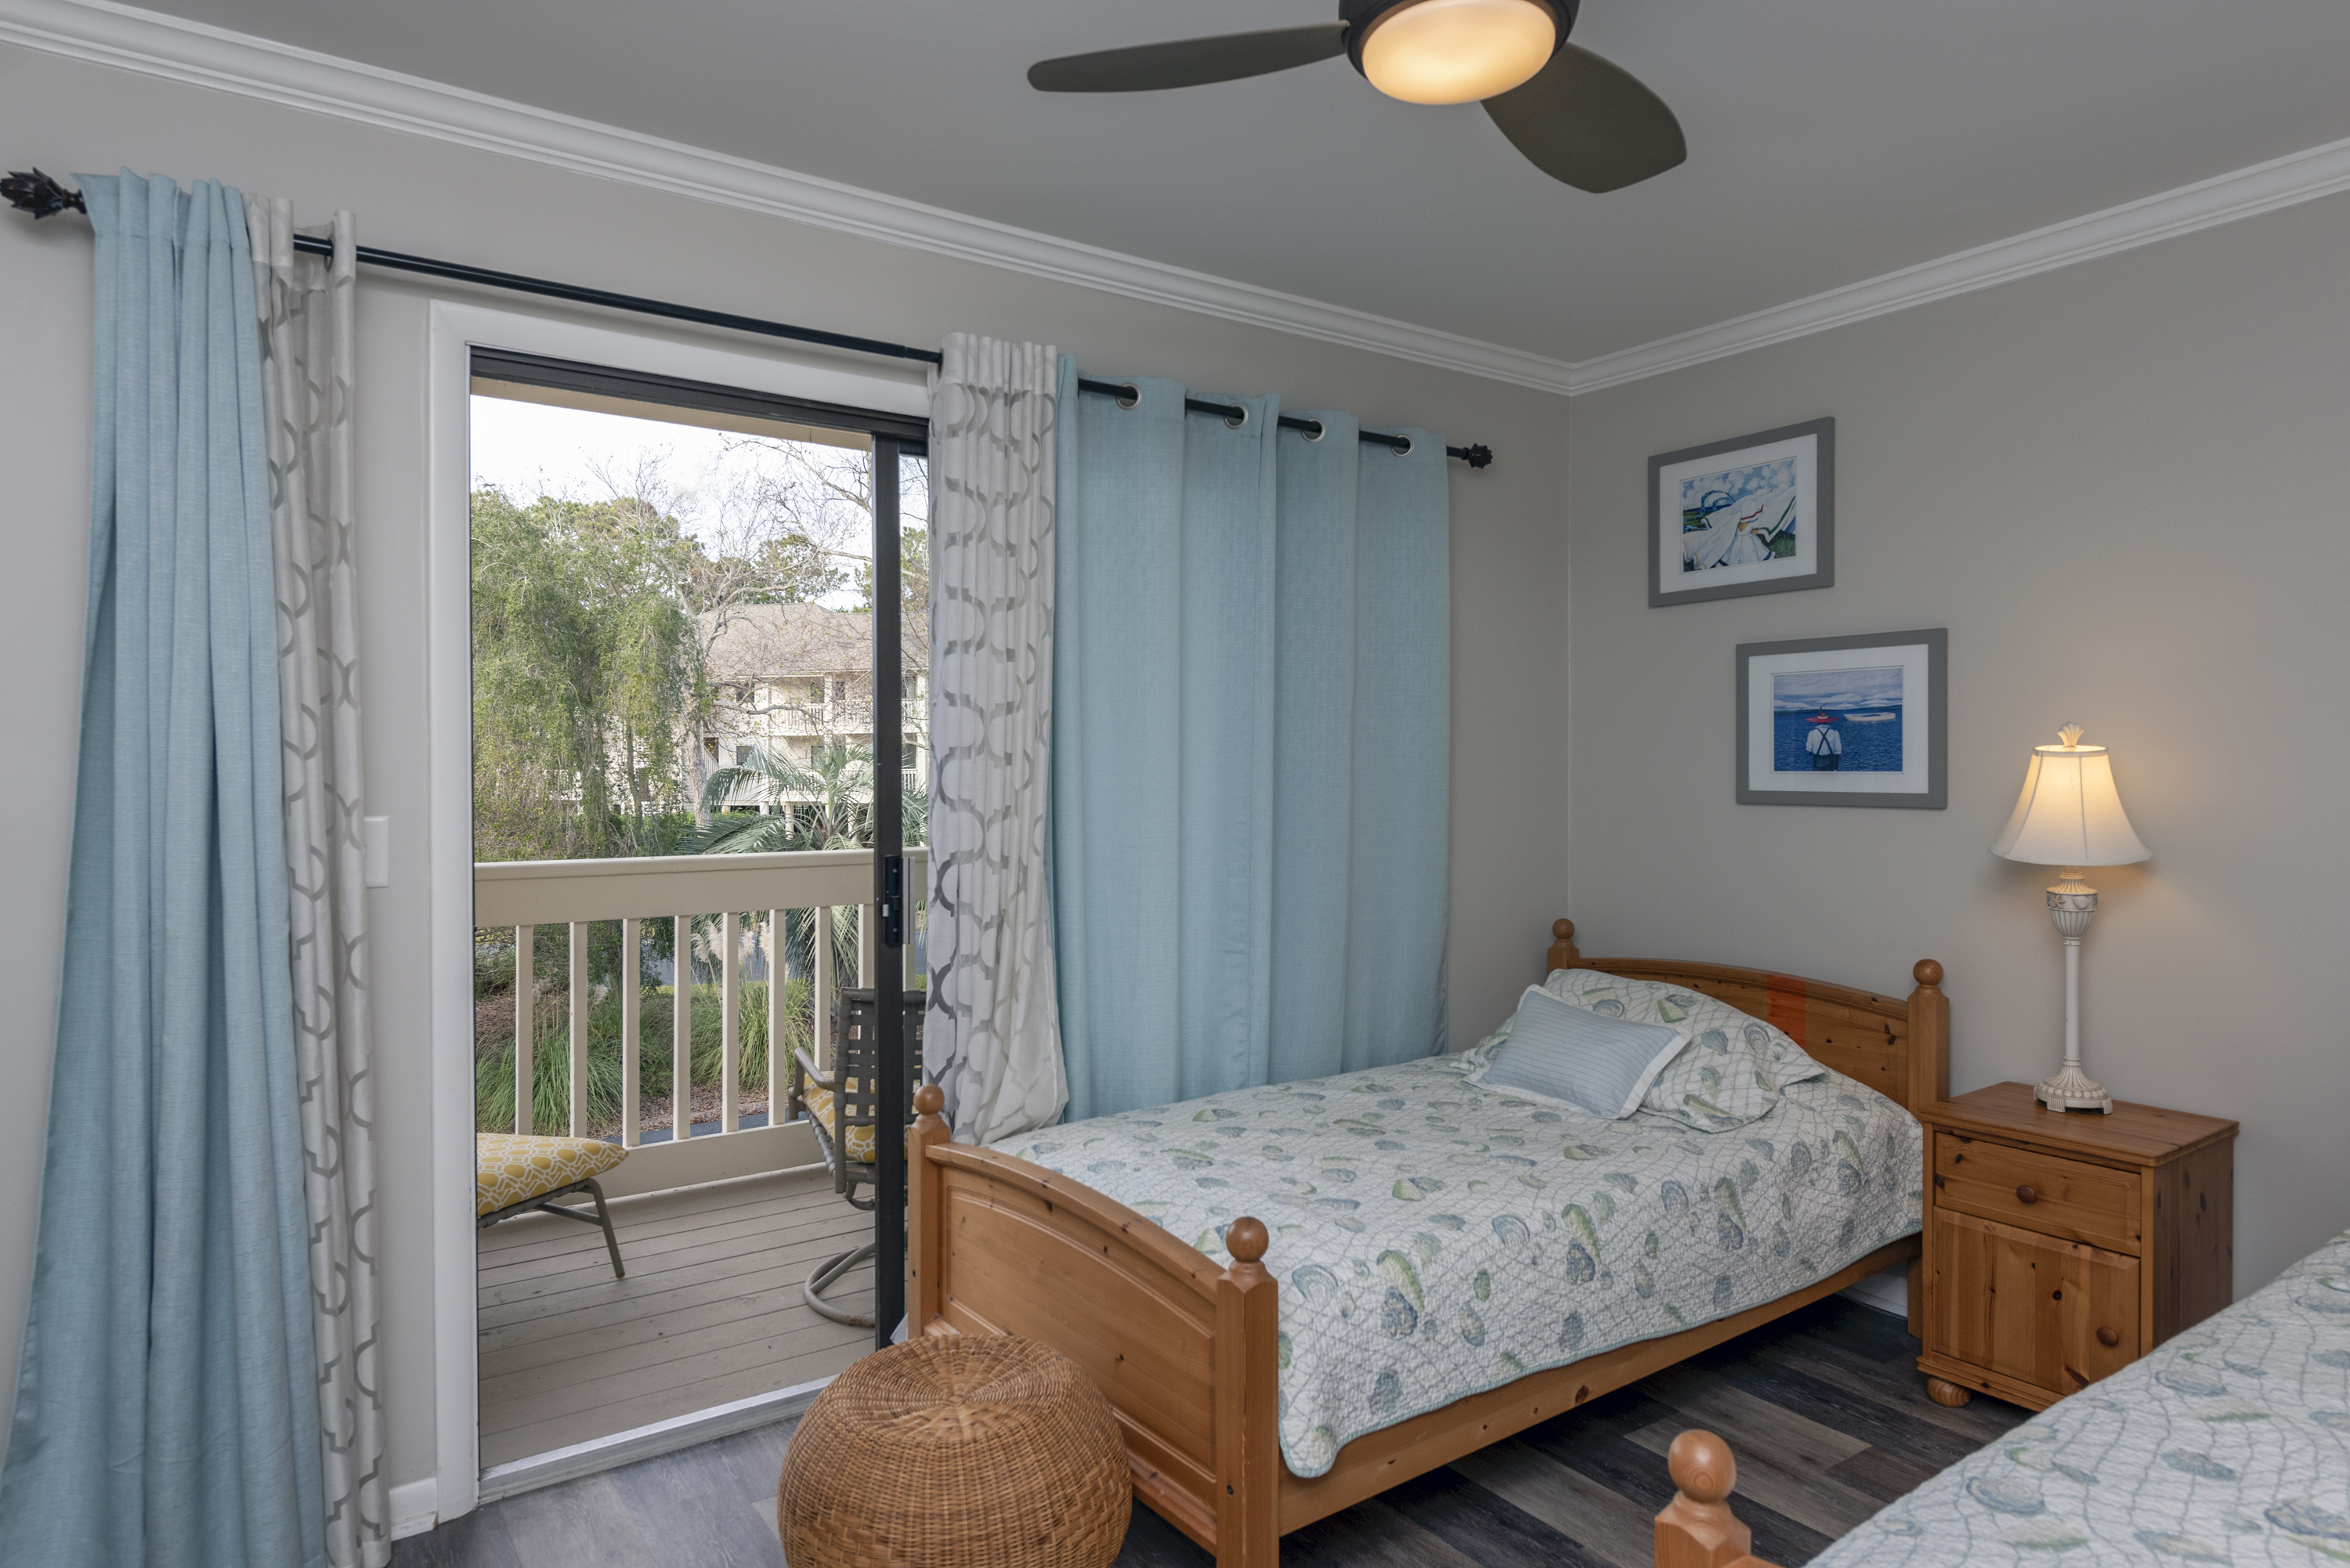 Sliding doors lead to a small porch in the guestroom.